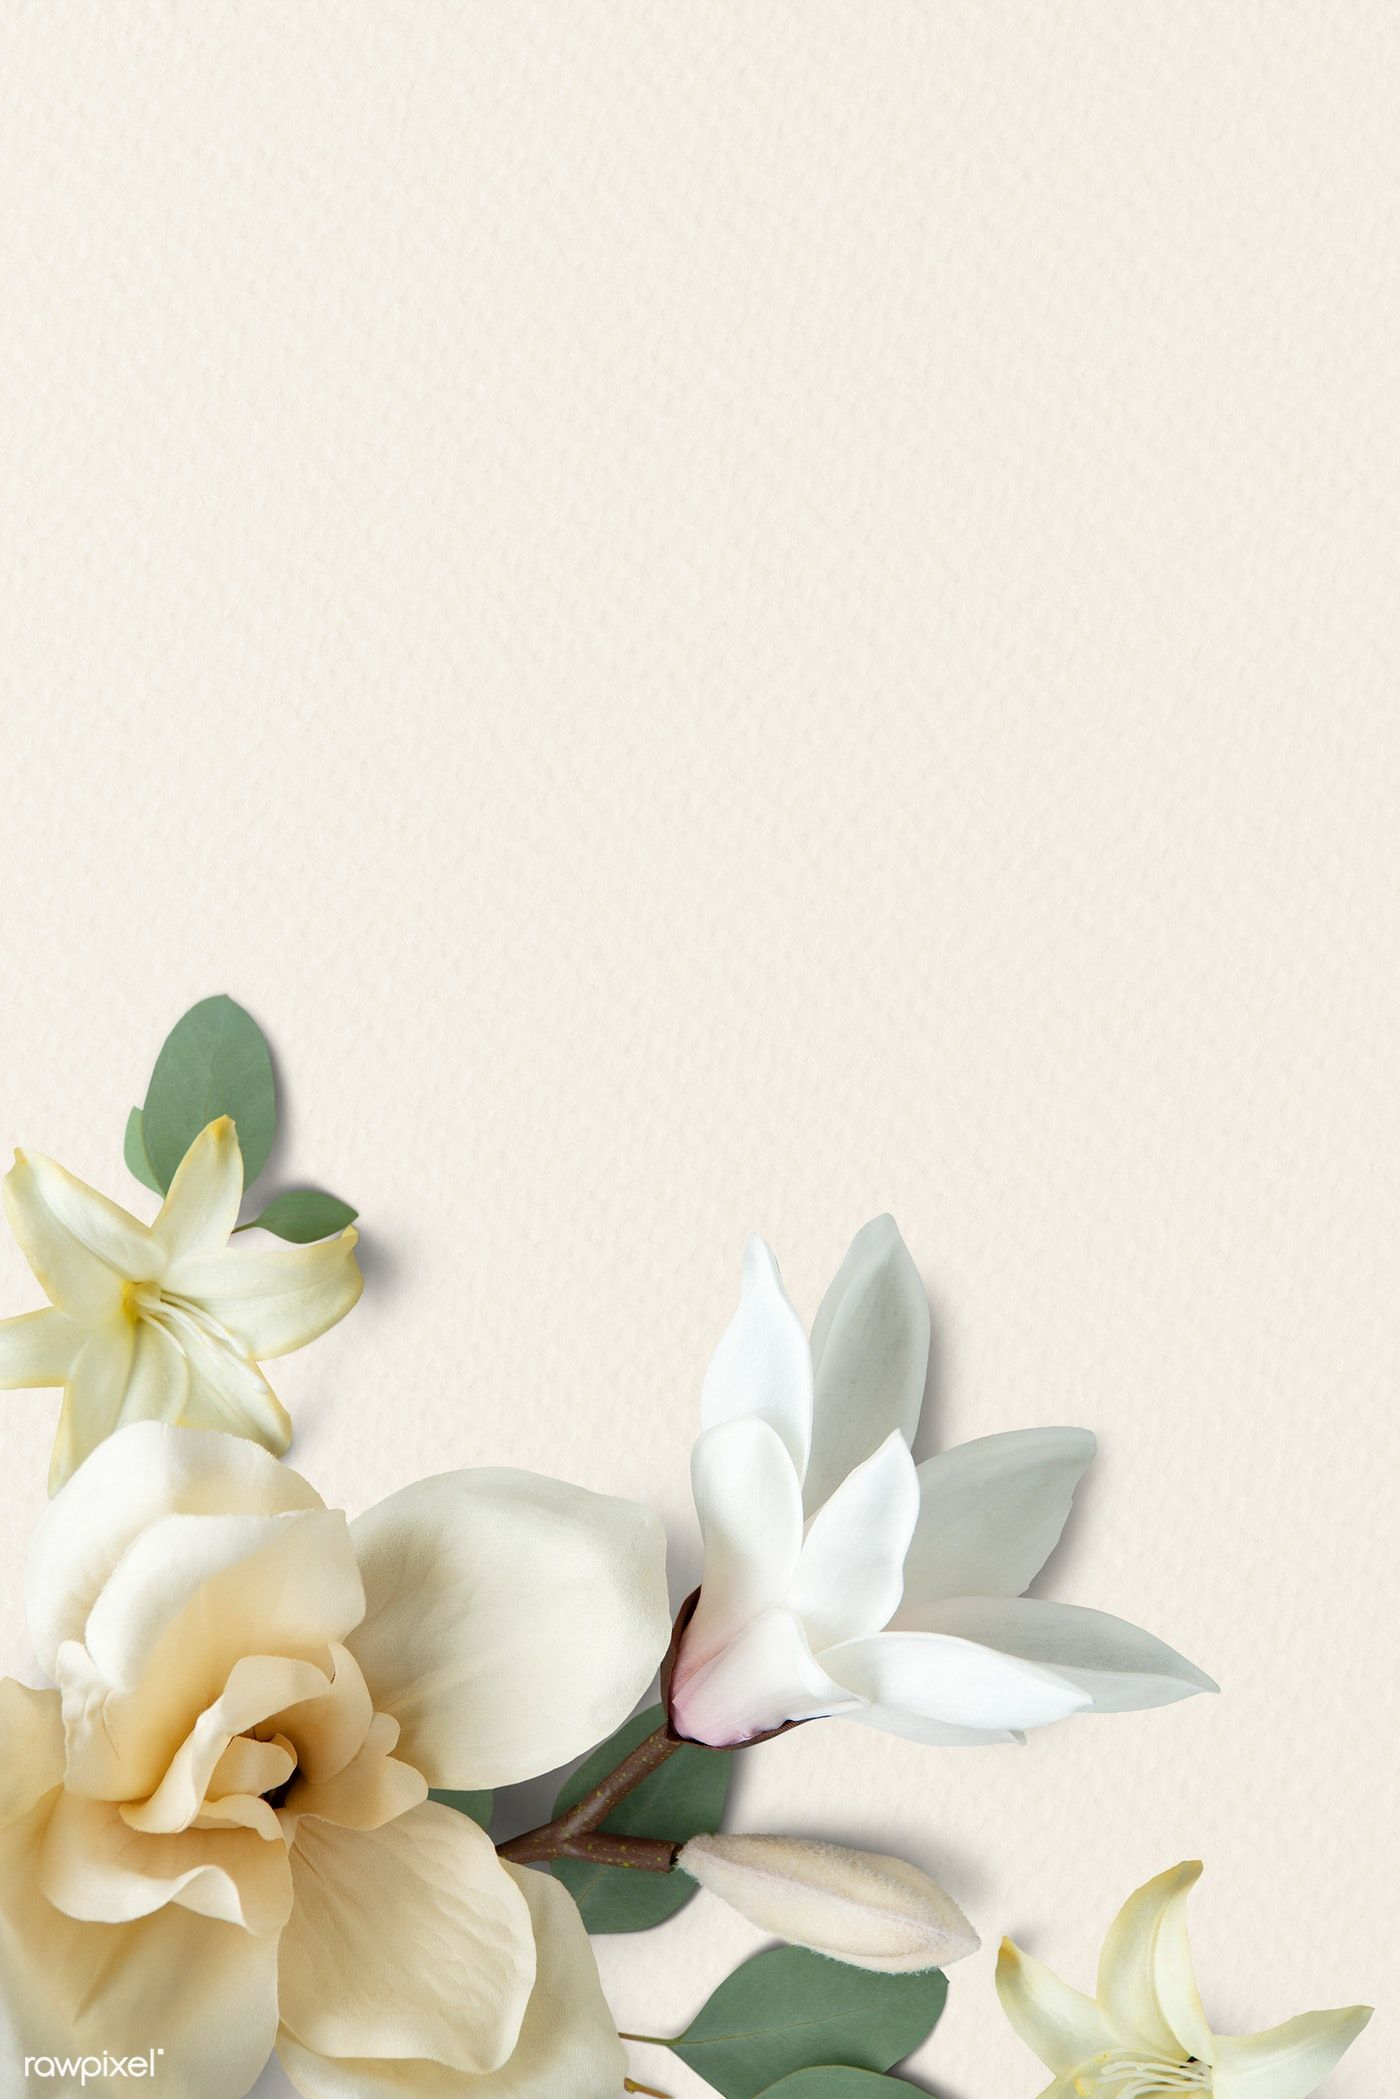 Download Premium Psd Of White Magnolia Pattern Background 1204168